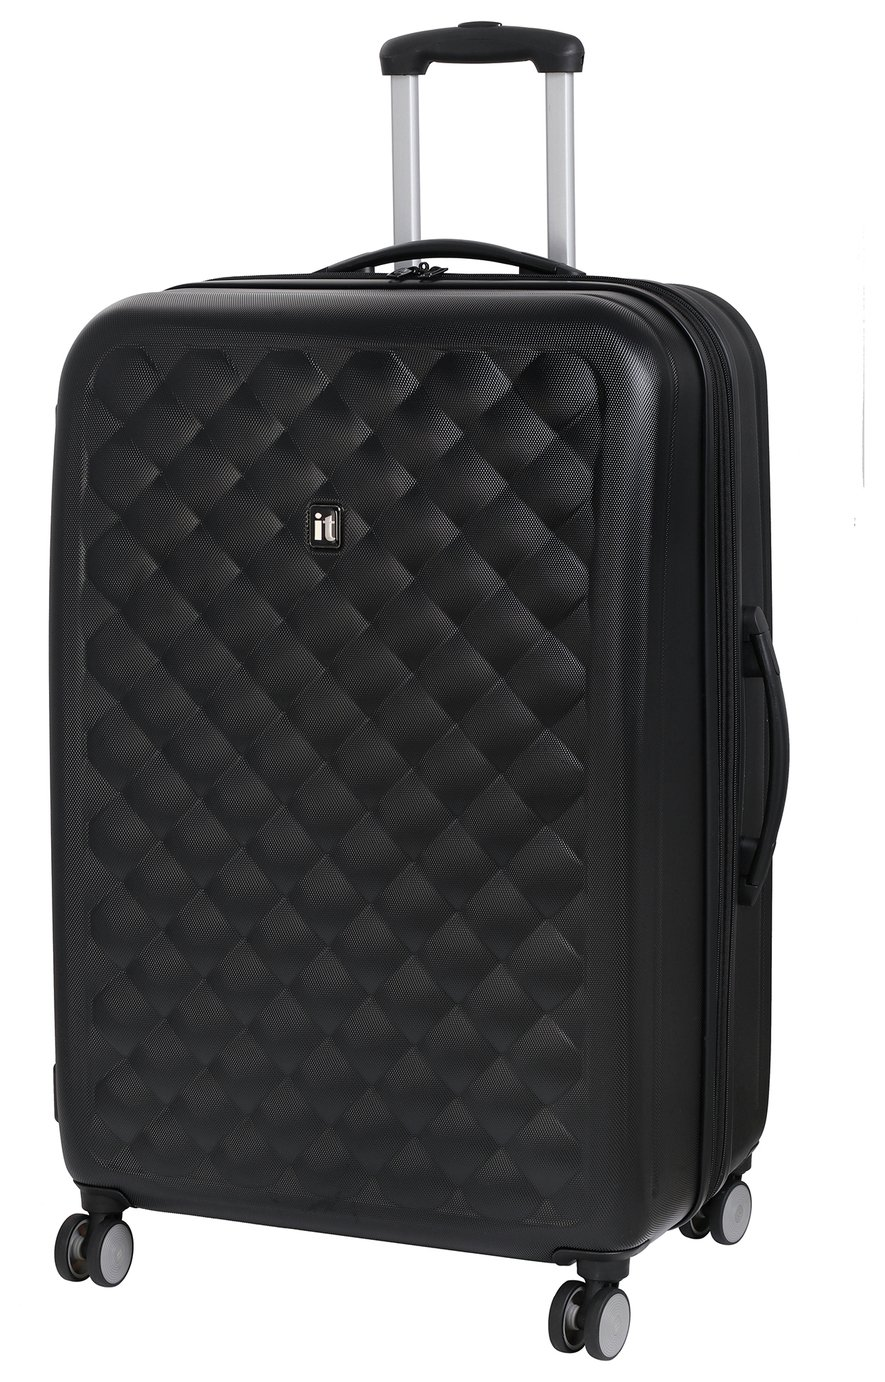 IT Luggage Large 8 Wheel Suitcase - Moonless Night